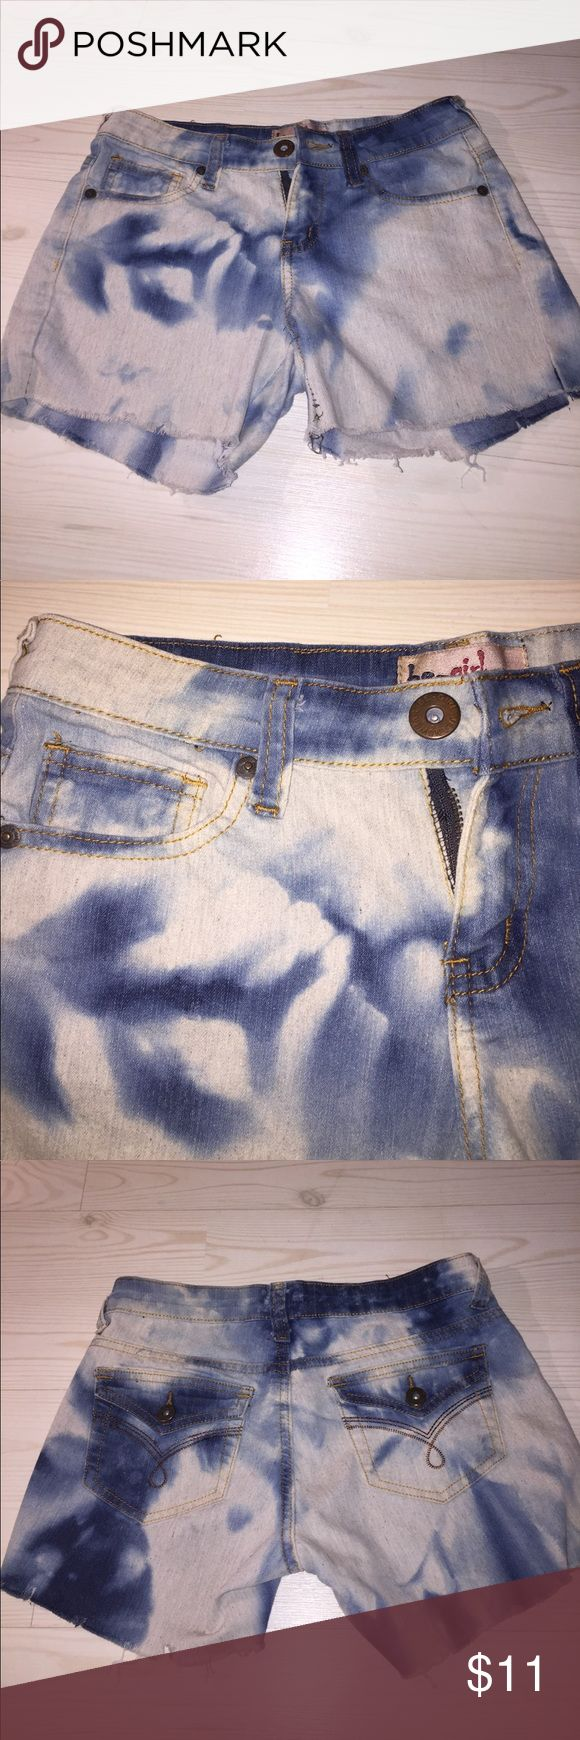 Bleach Wash Denim Shorts Unique Denim Shorts! Very soft, lightweight, I purchased like this-these are not homemade cut offs. 😜  I'm a 24in waist so I've marked them XS in size. 11 in length. be girl Shorts Jean Shorts